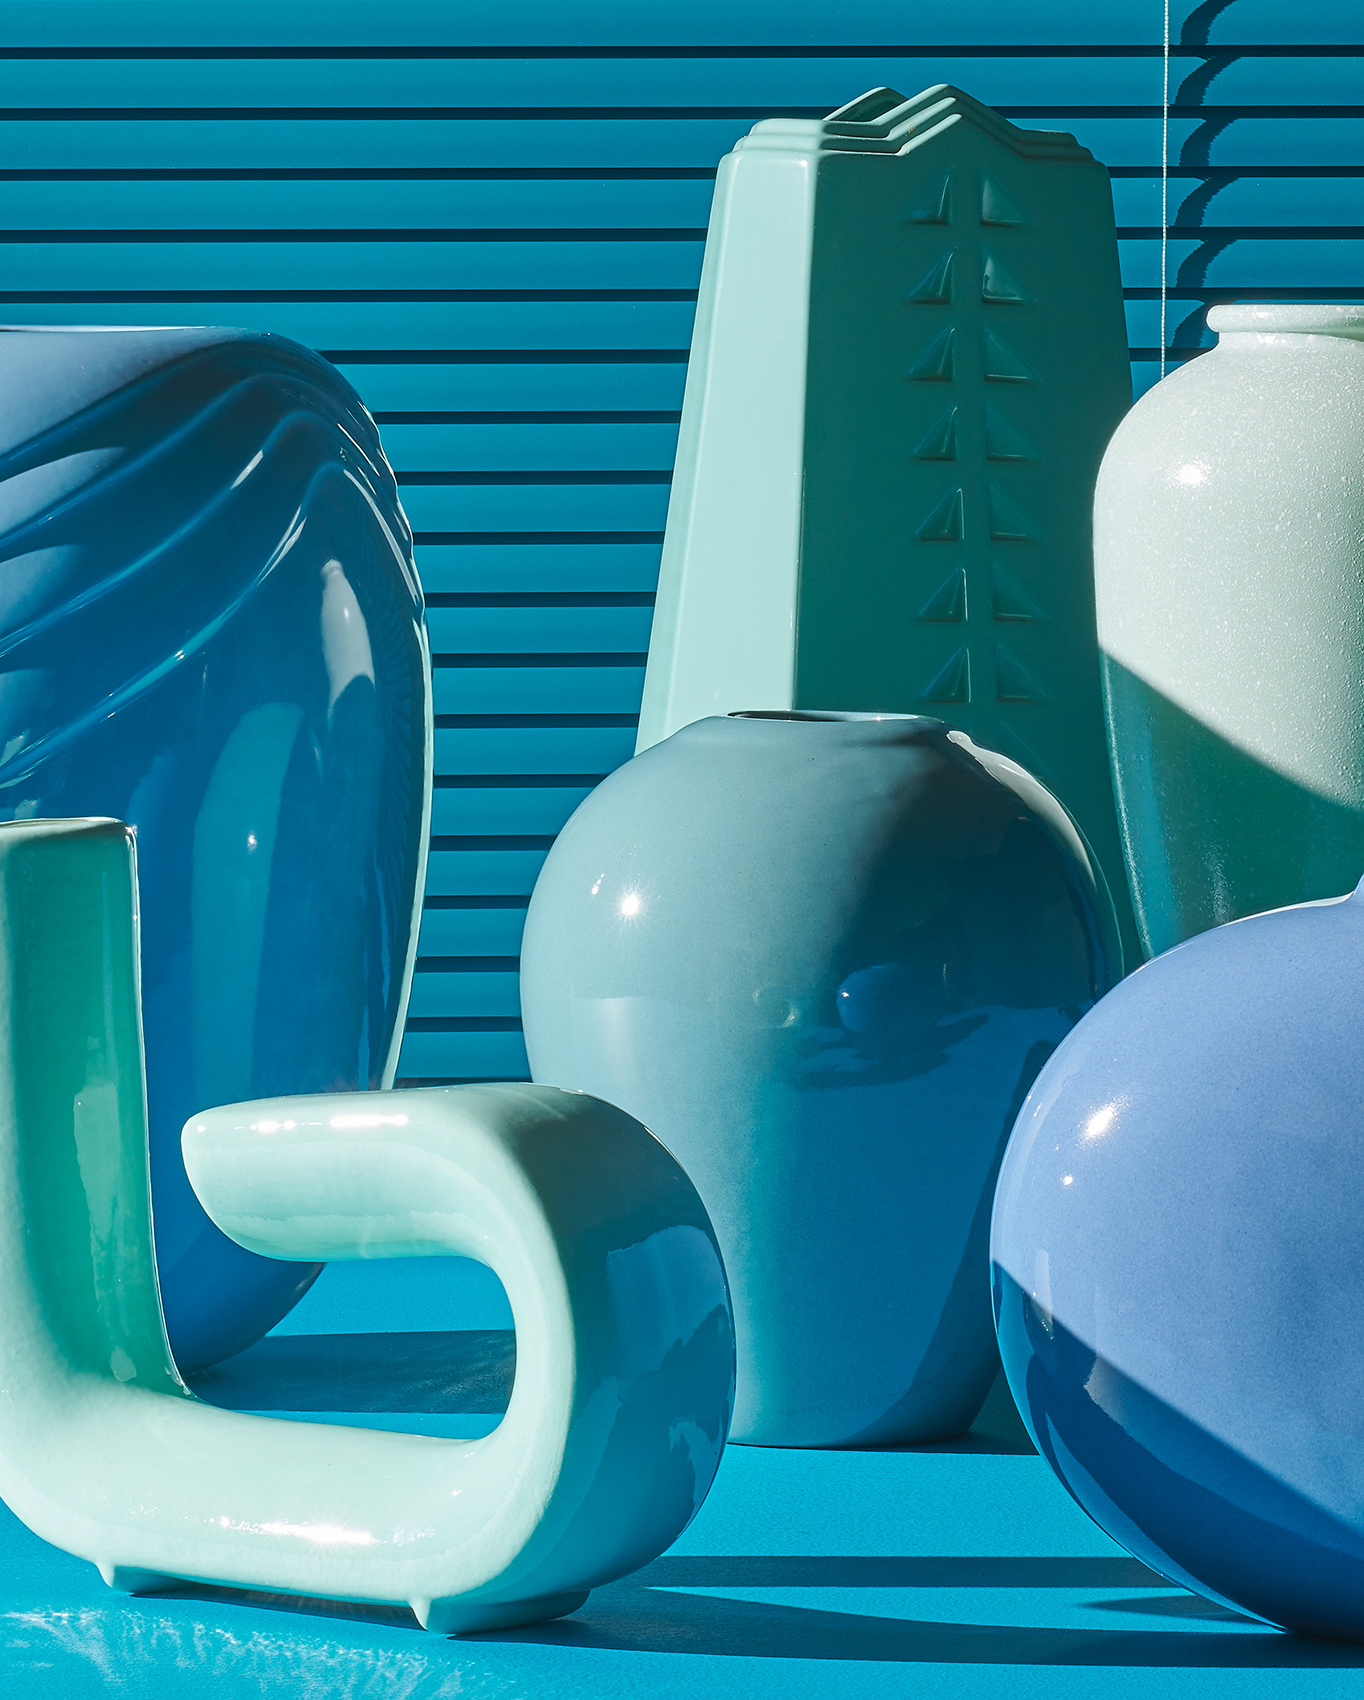 2020_07_Ronnie_80s_teal_vases_cropped